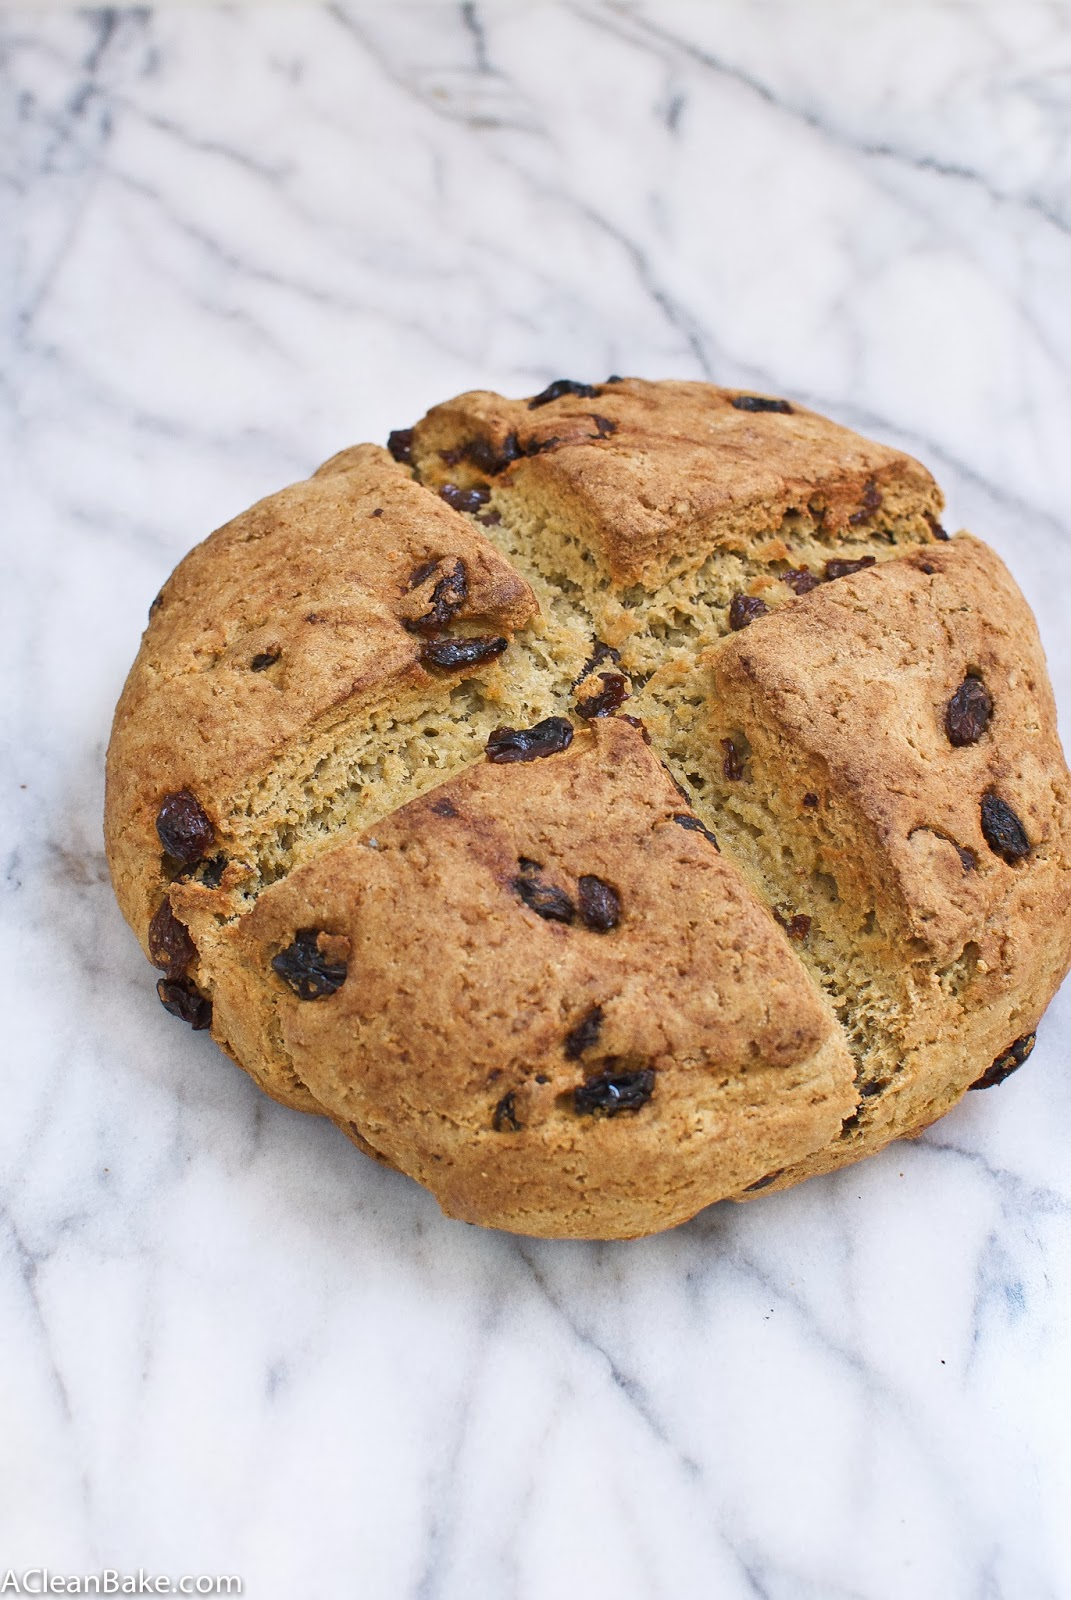 The best homemade Irish Soda Bread out there - includes wheat and gluten-free versions of the recipe. Don't miss this bread!